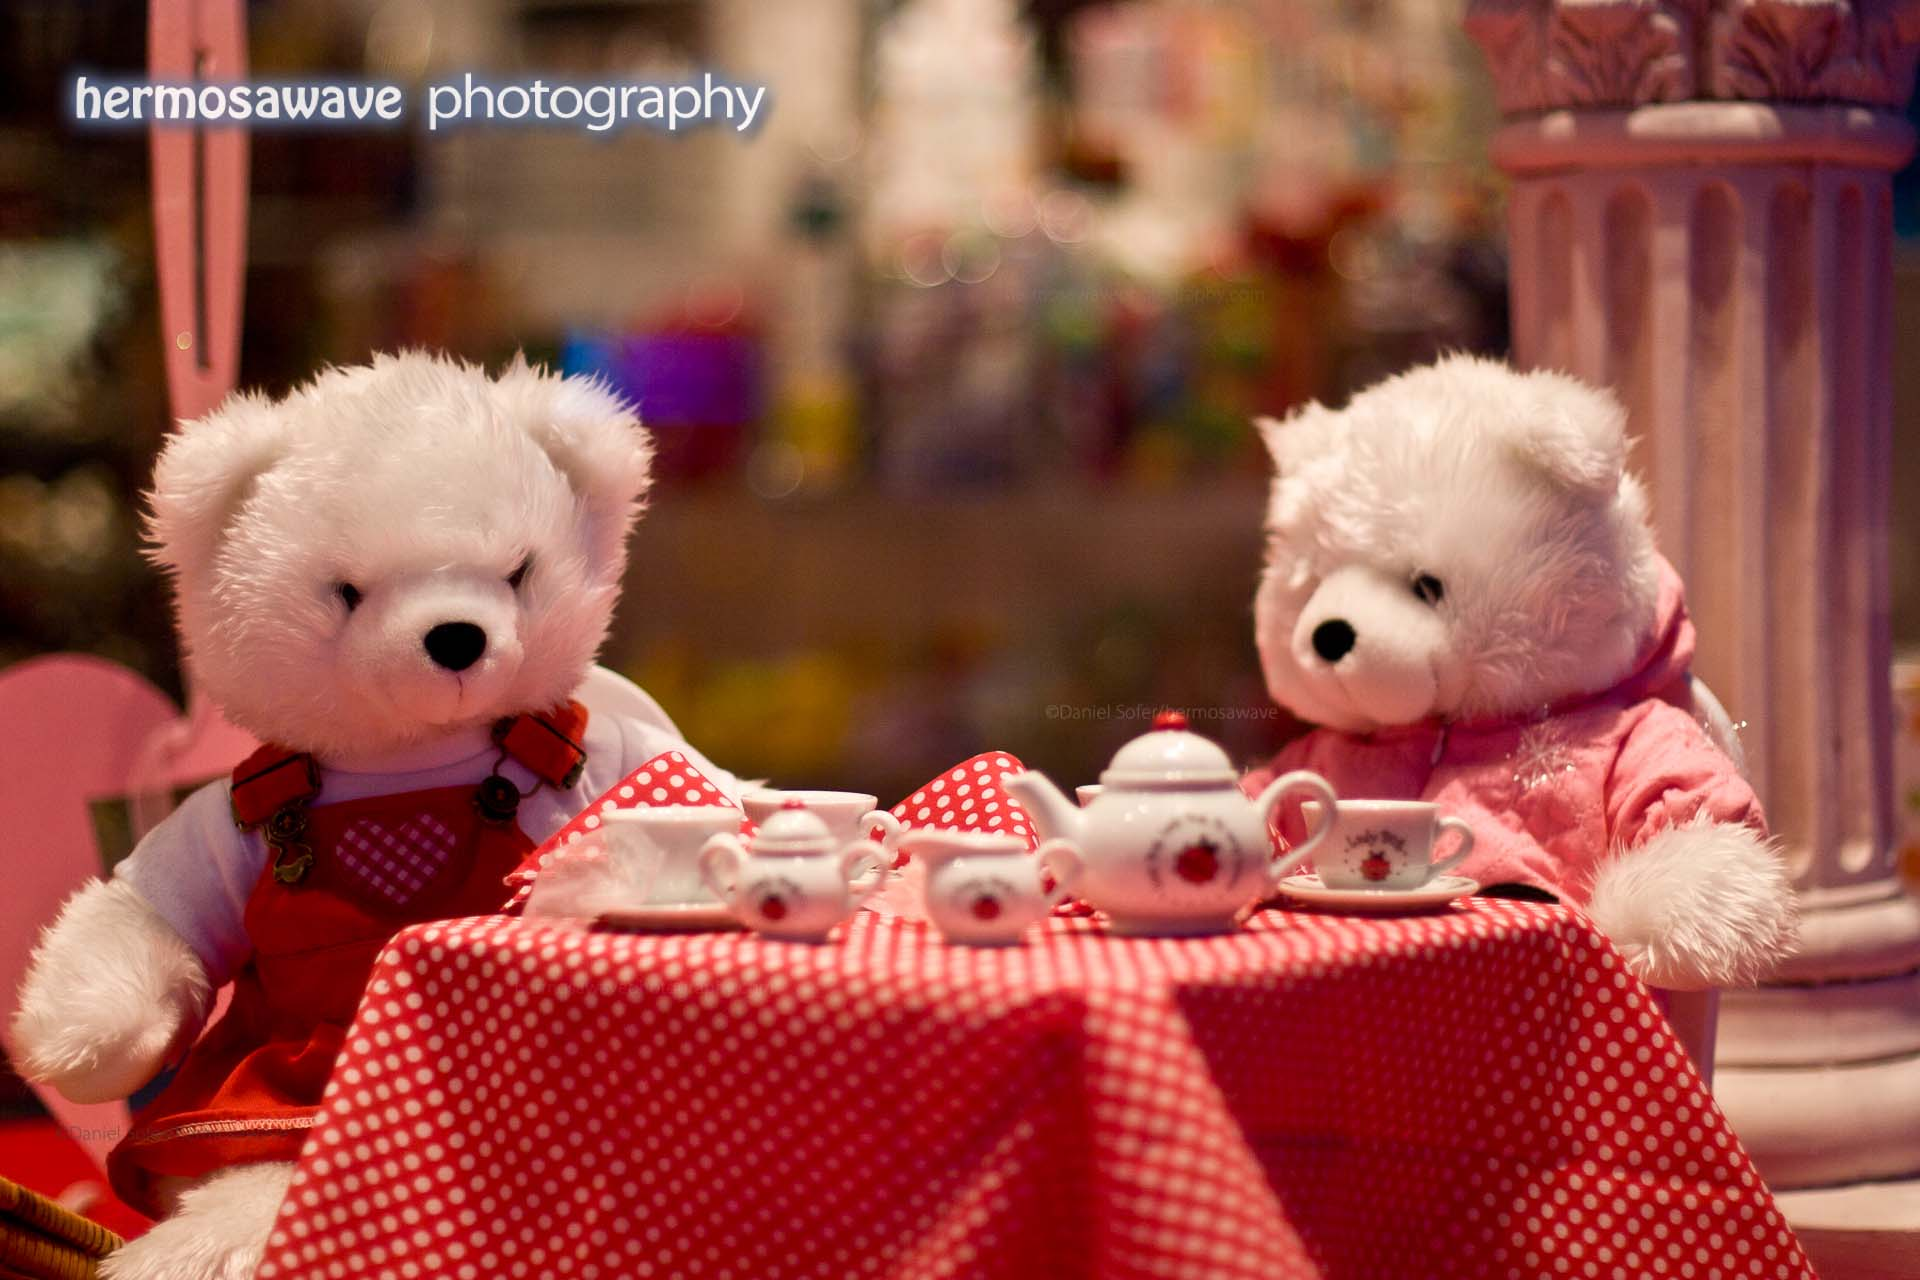 Bears' Tea Party